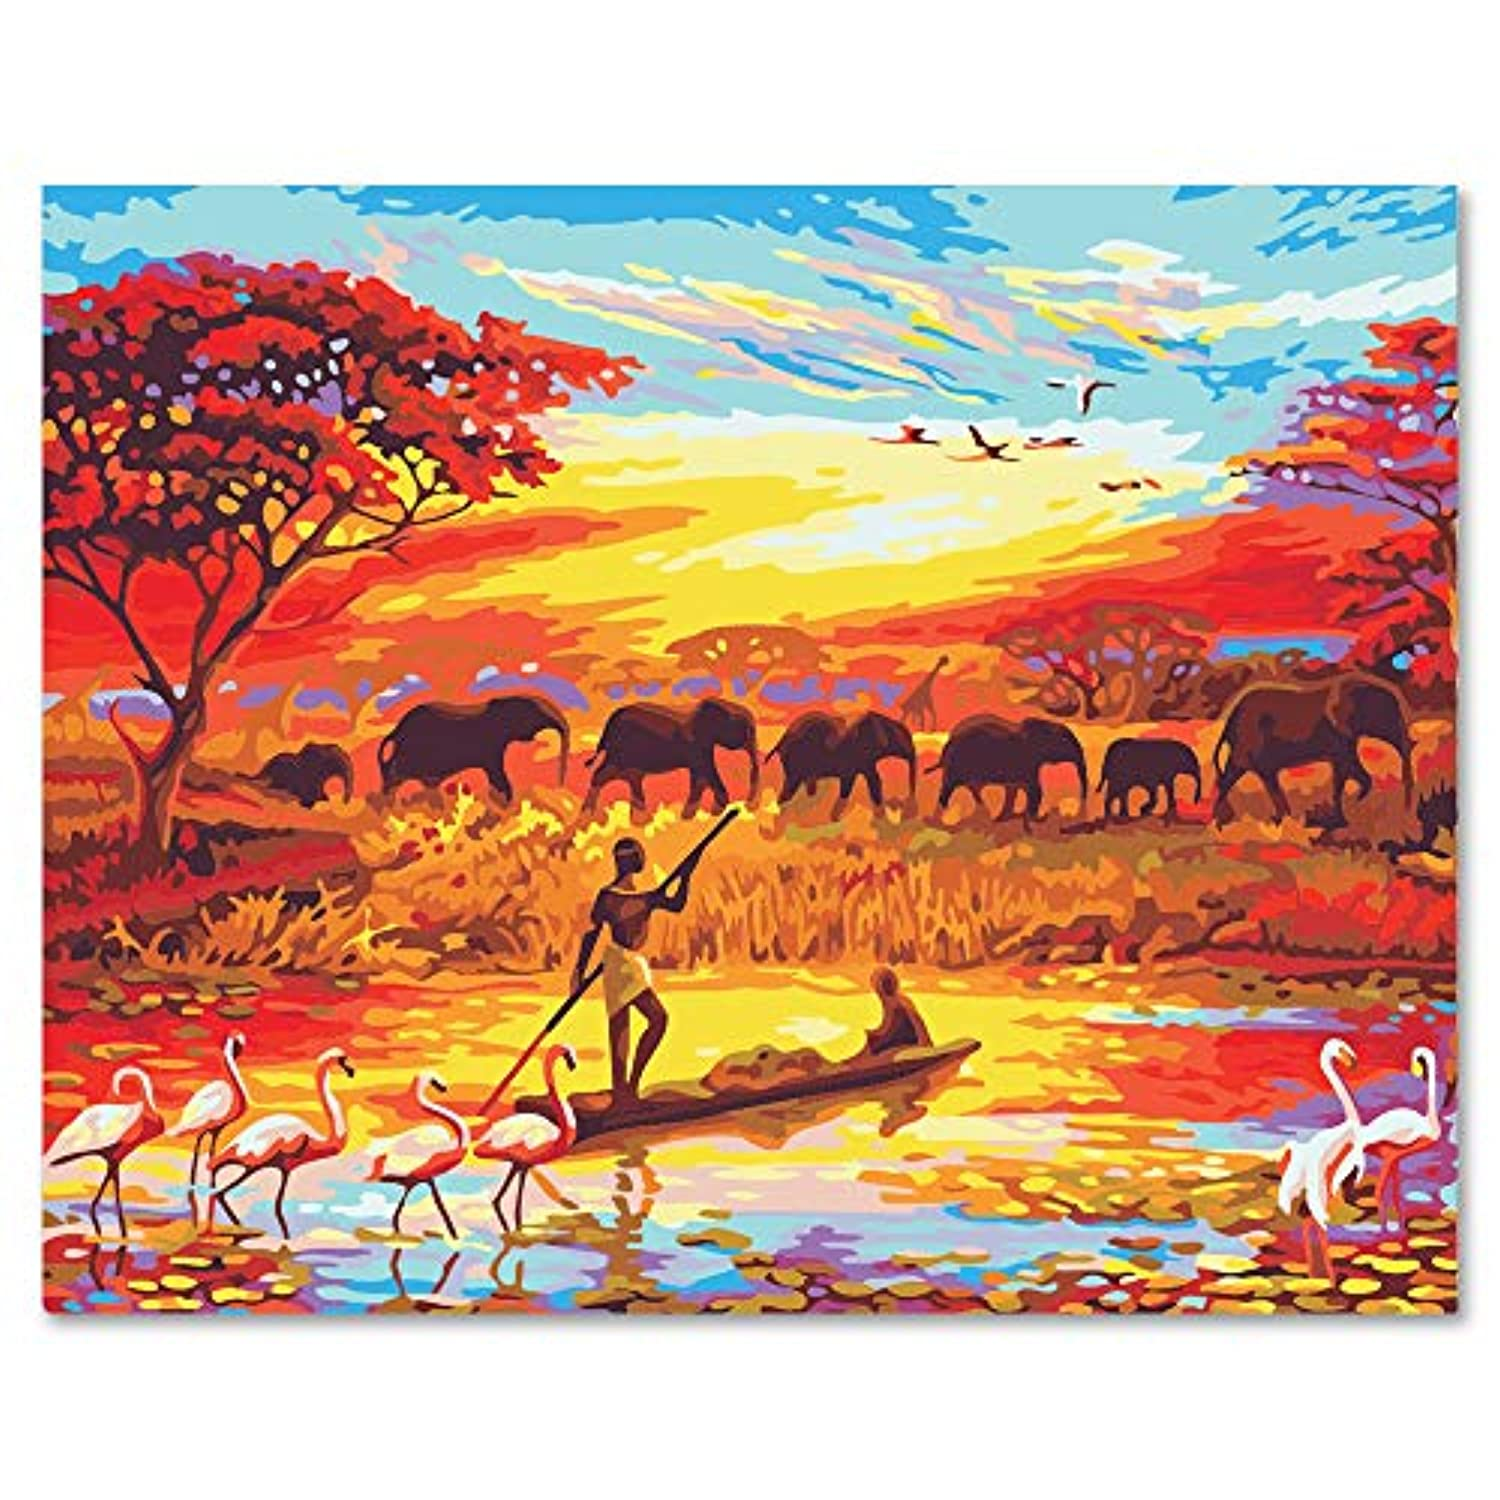 LIUDAO Paint by Number Kits Paintworks DIY Oil Painting for Kids and Adults Beginner, Sunset and Elephant Africa Animals Painting (16x20 inch,Frameless)